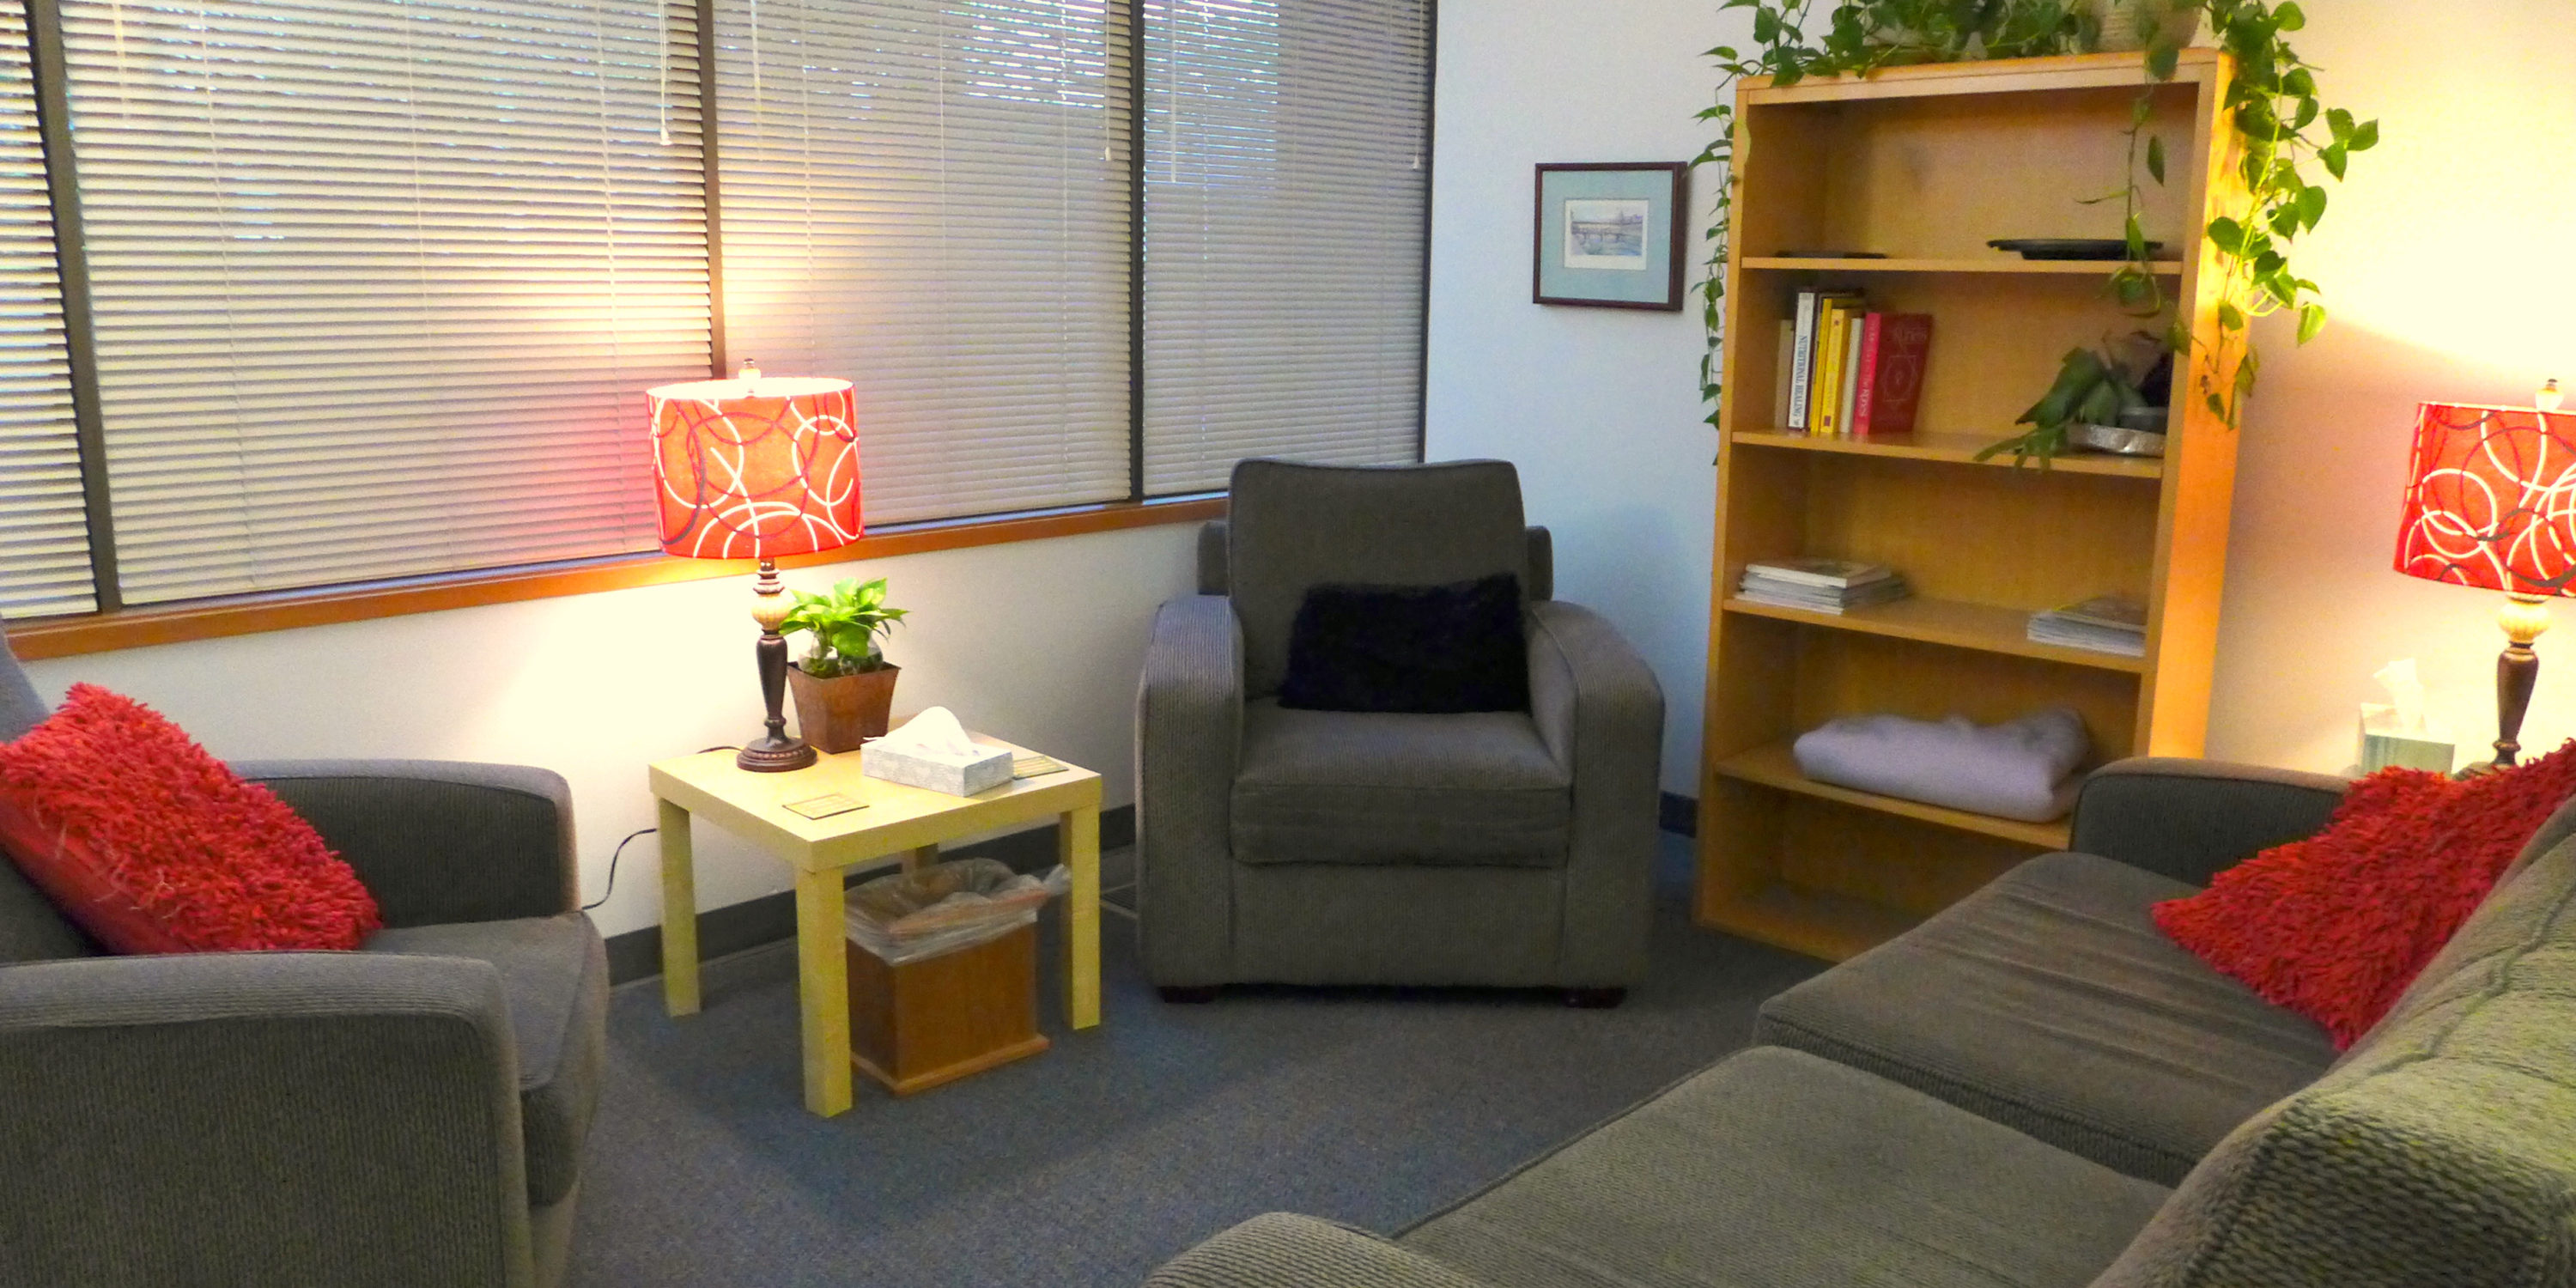 Counseling Room 1 for rent, Sage Center for Wholeness and Health, Beaverton Oregon